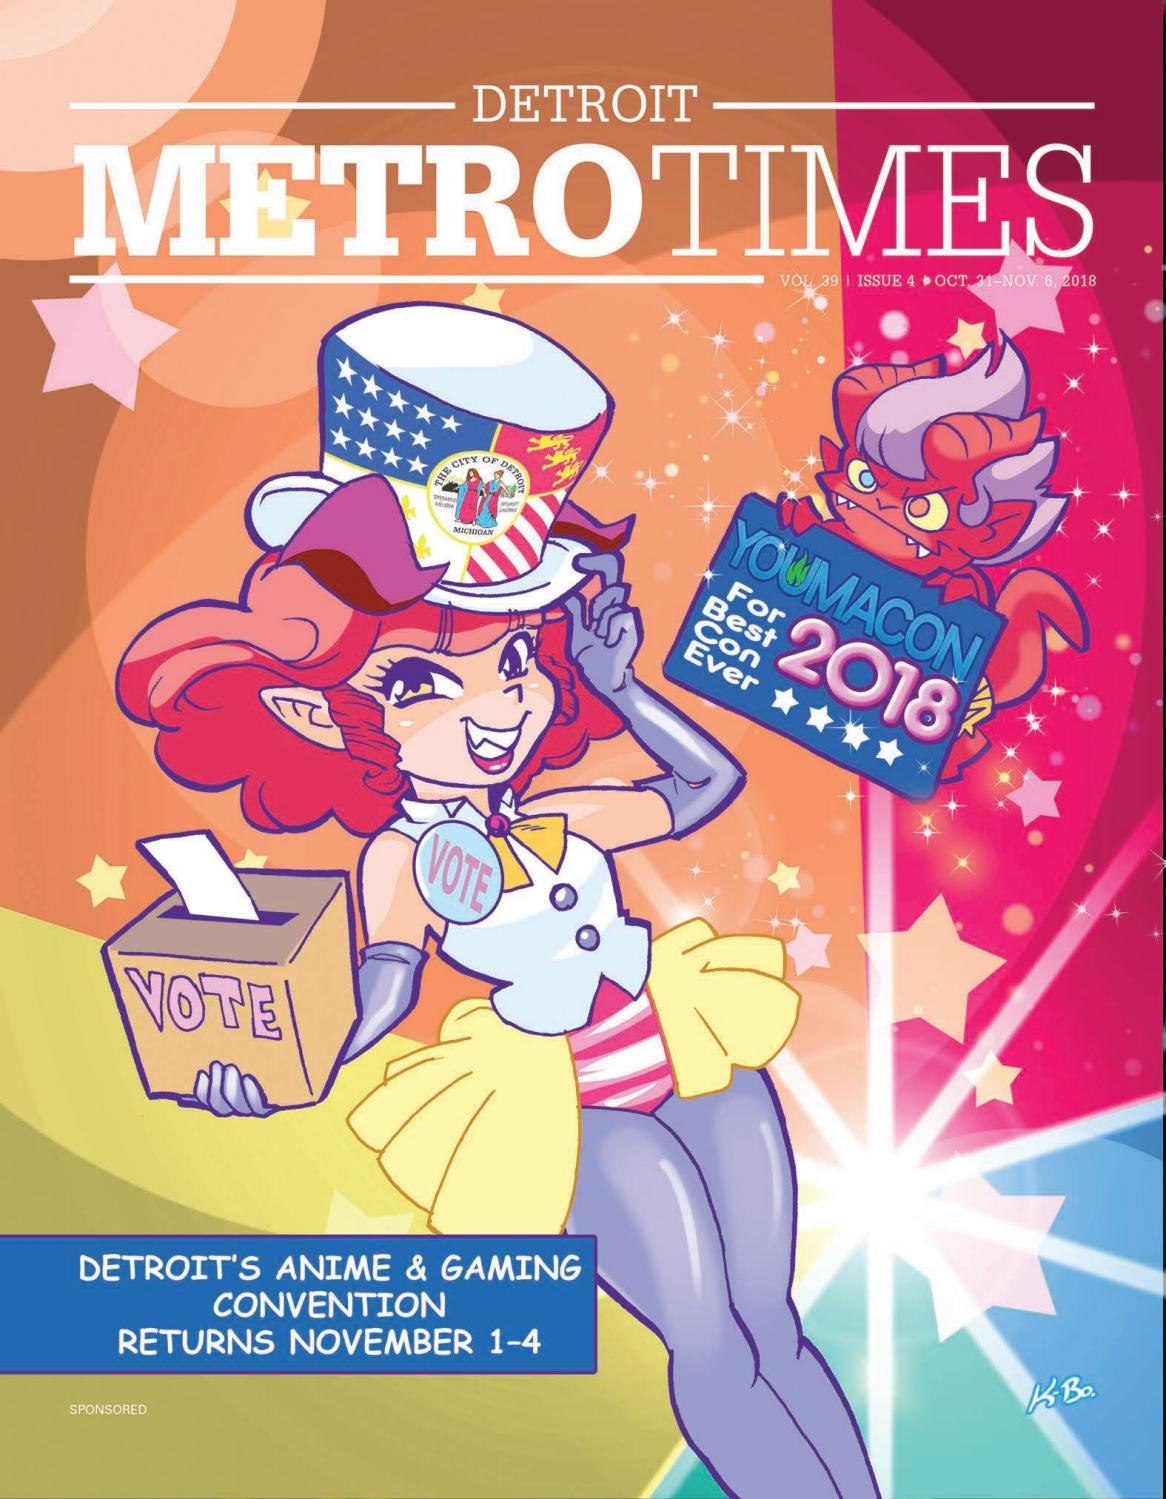 Metro Times 103118 by Euclid Media Group - issuu